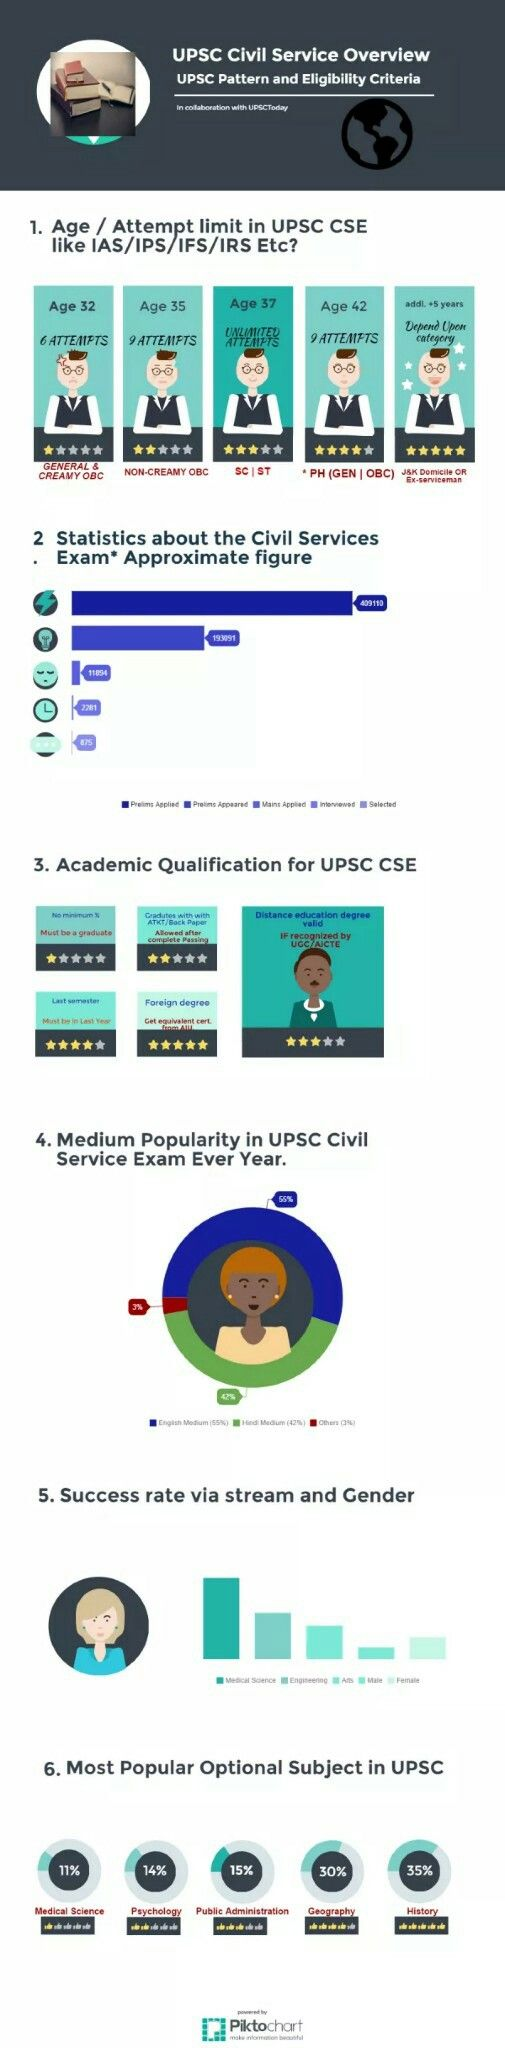 Everything you need to know about upsc.